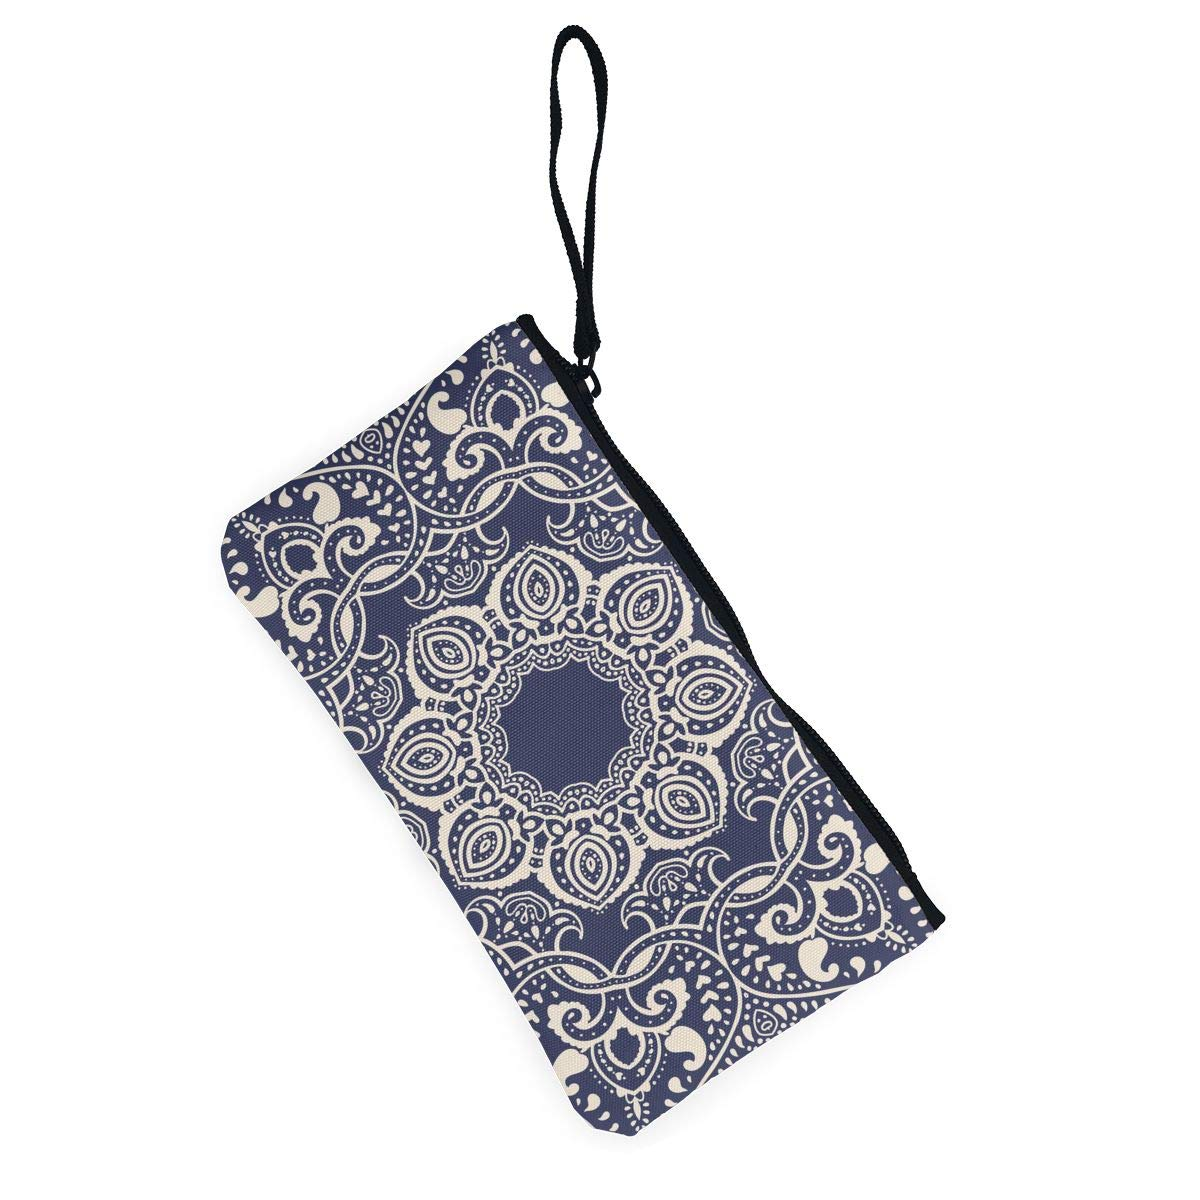 Maple Memories Soccer Portable Canvas Coin Purse Change Purse Pouch Mini Wallet Gifts For Women Girls